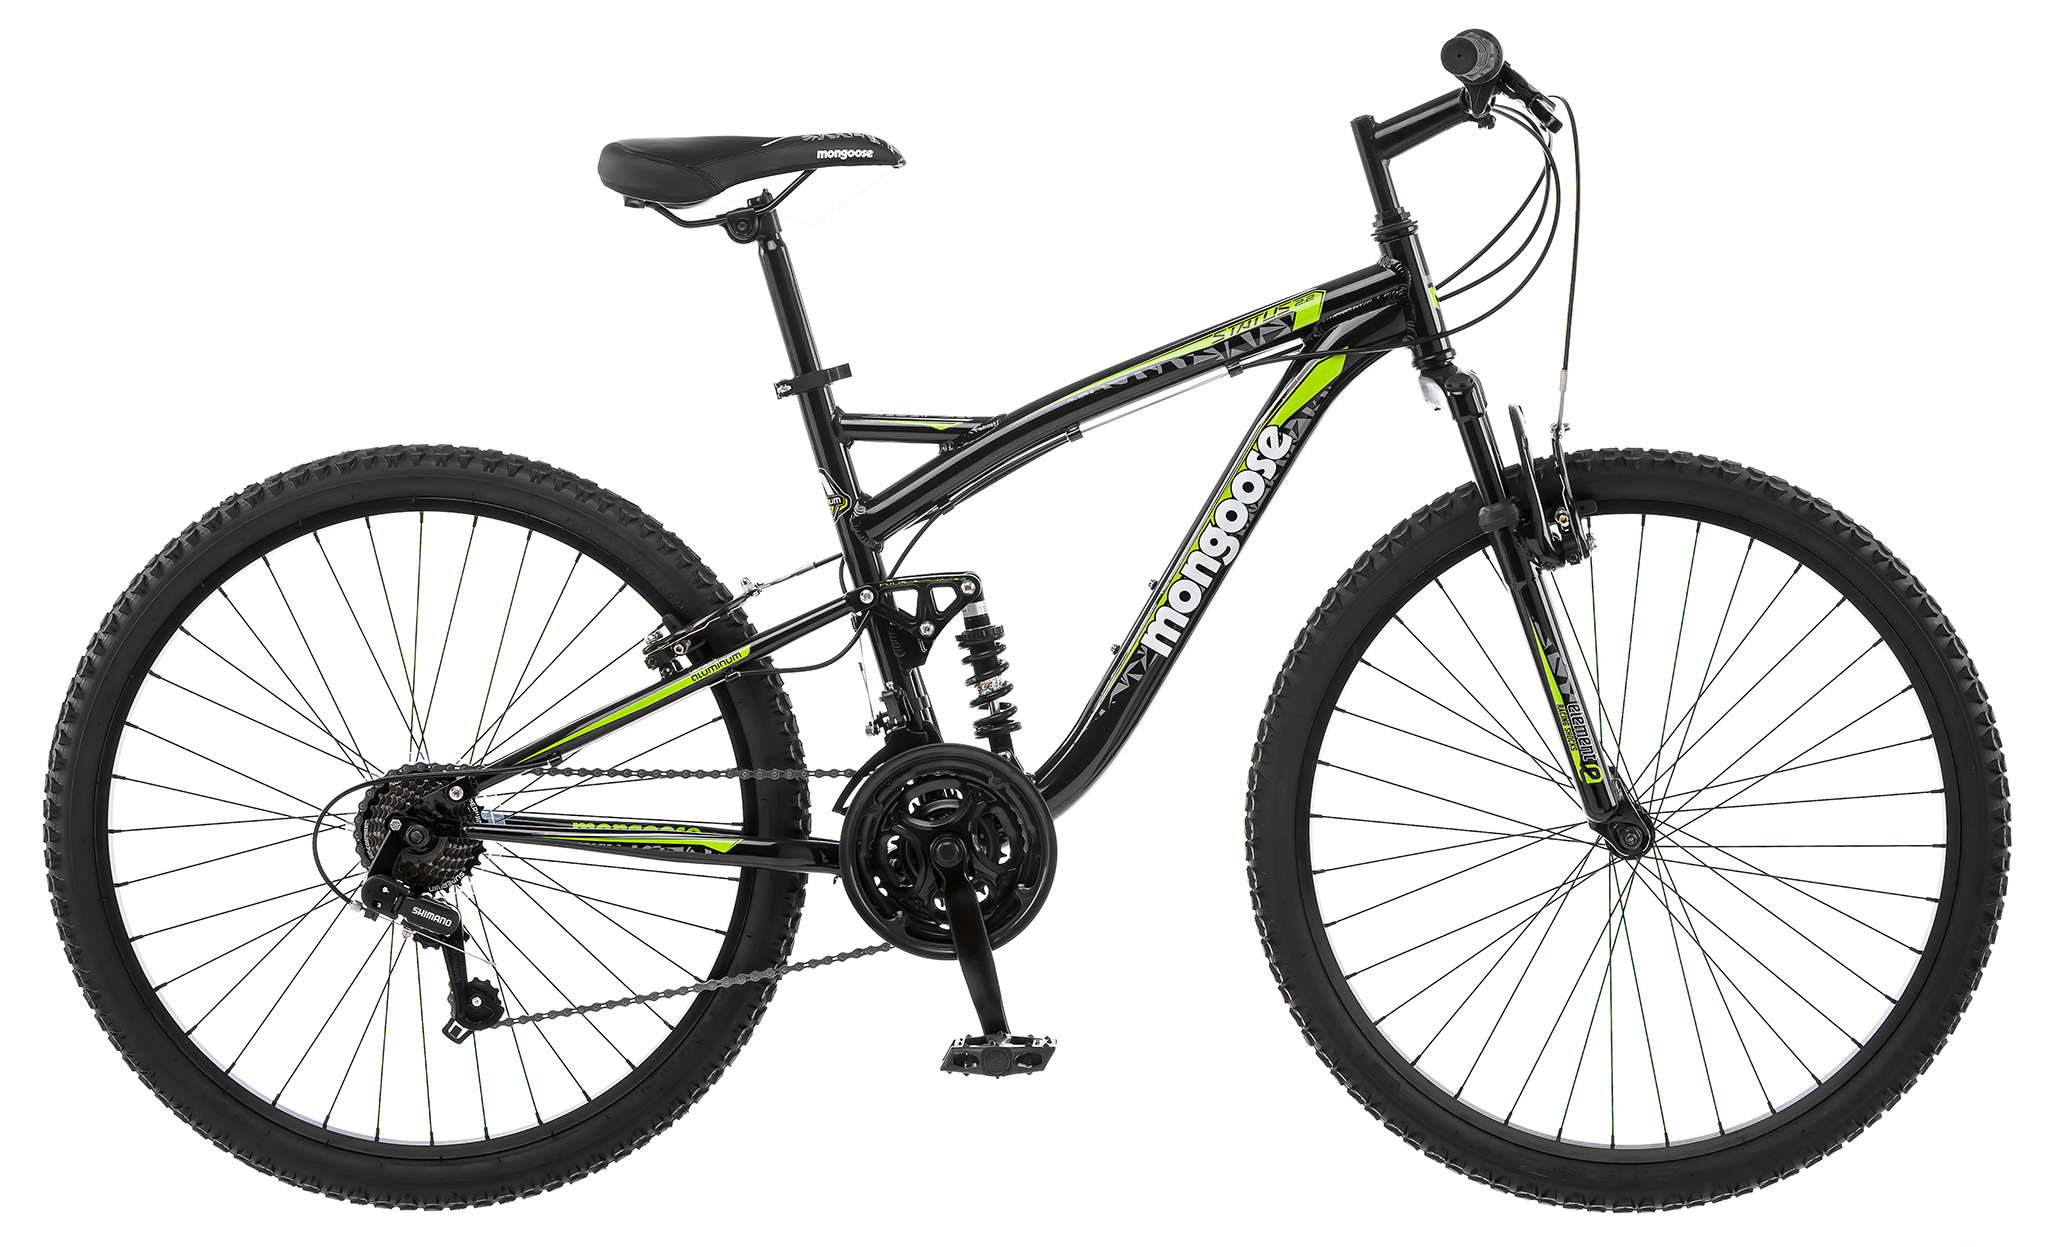 Mongoose 29er Status 2.6 Men's Suspension 21 Speed Mountain Bike